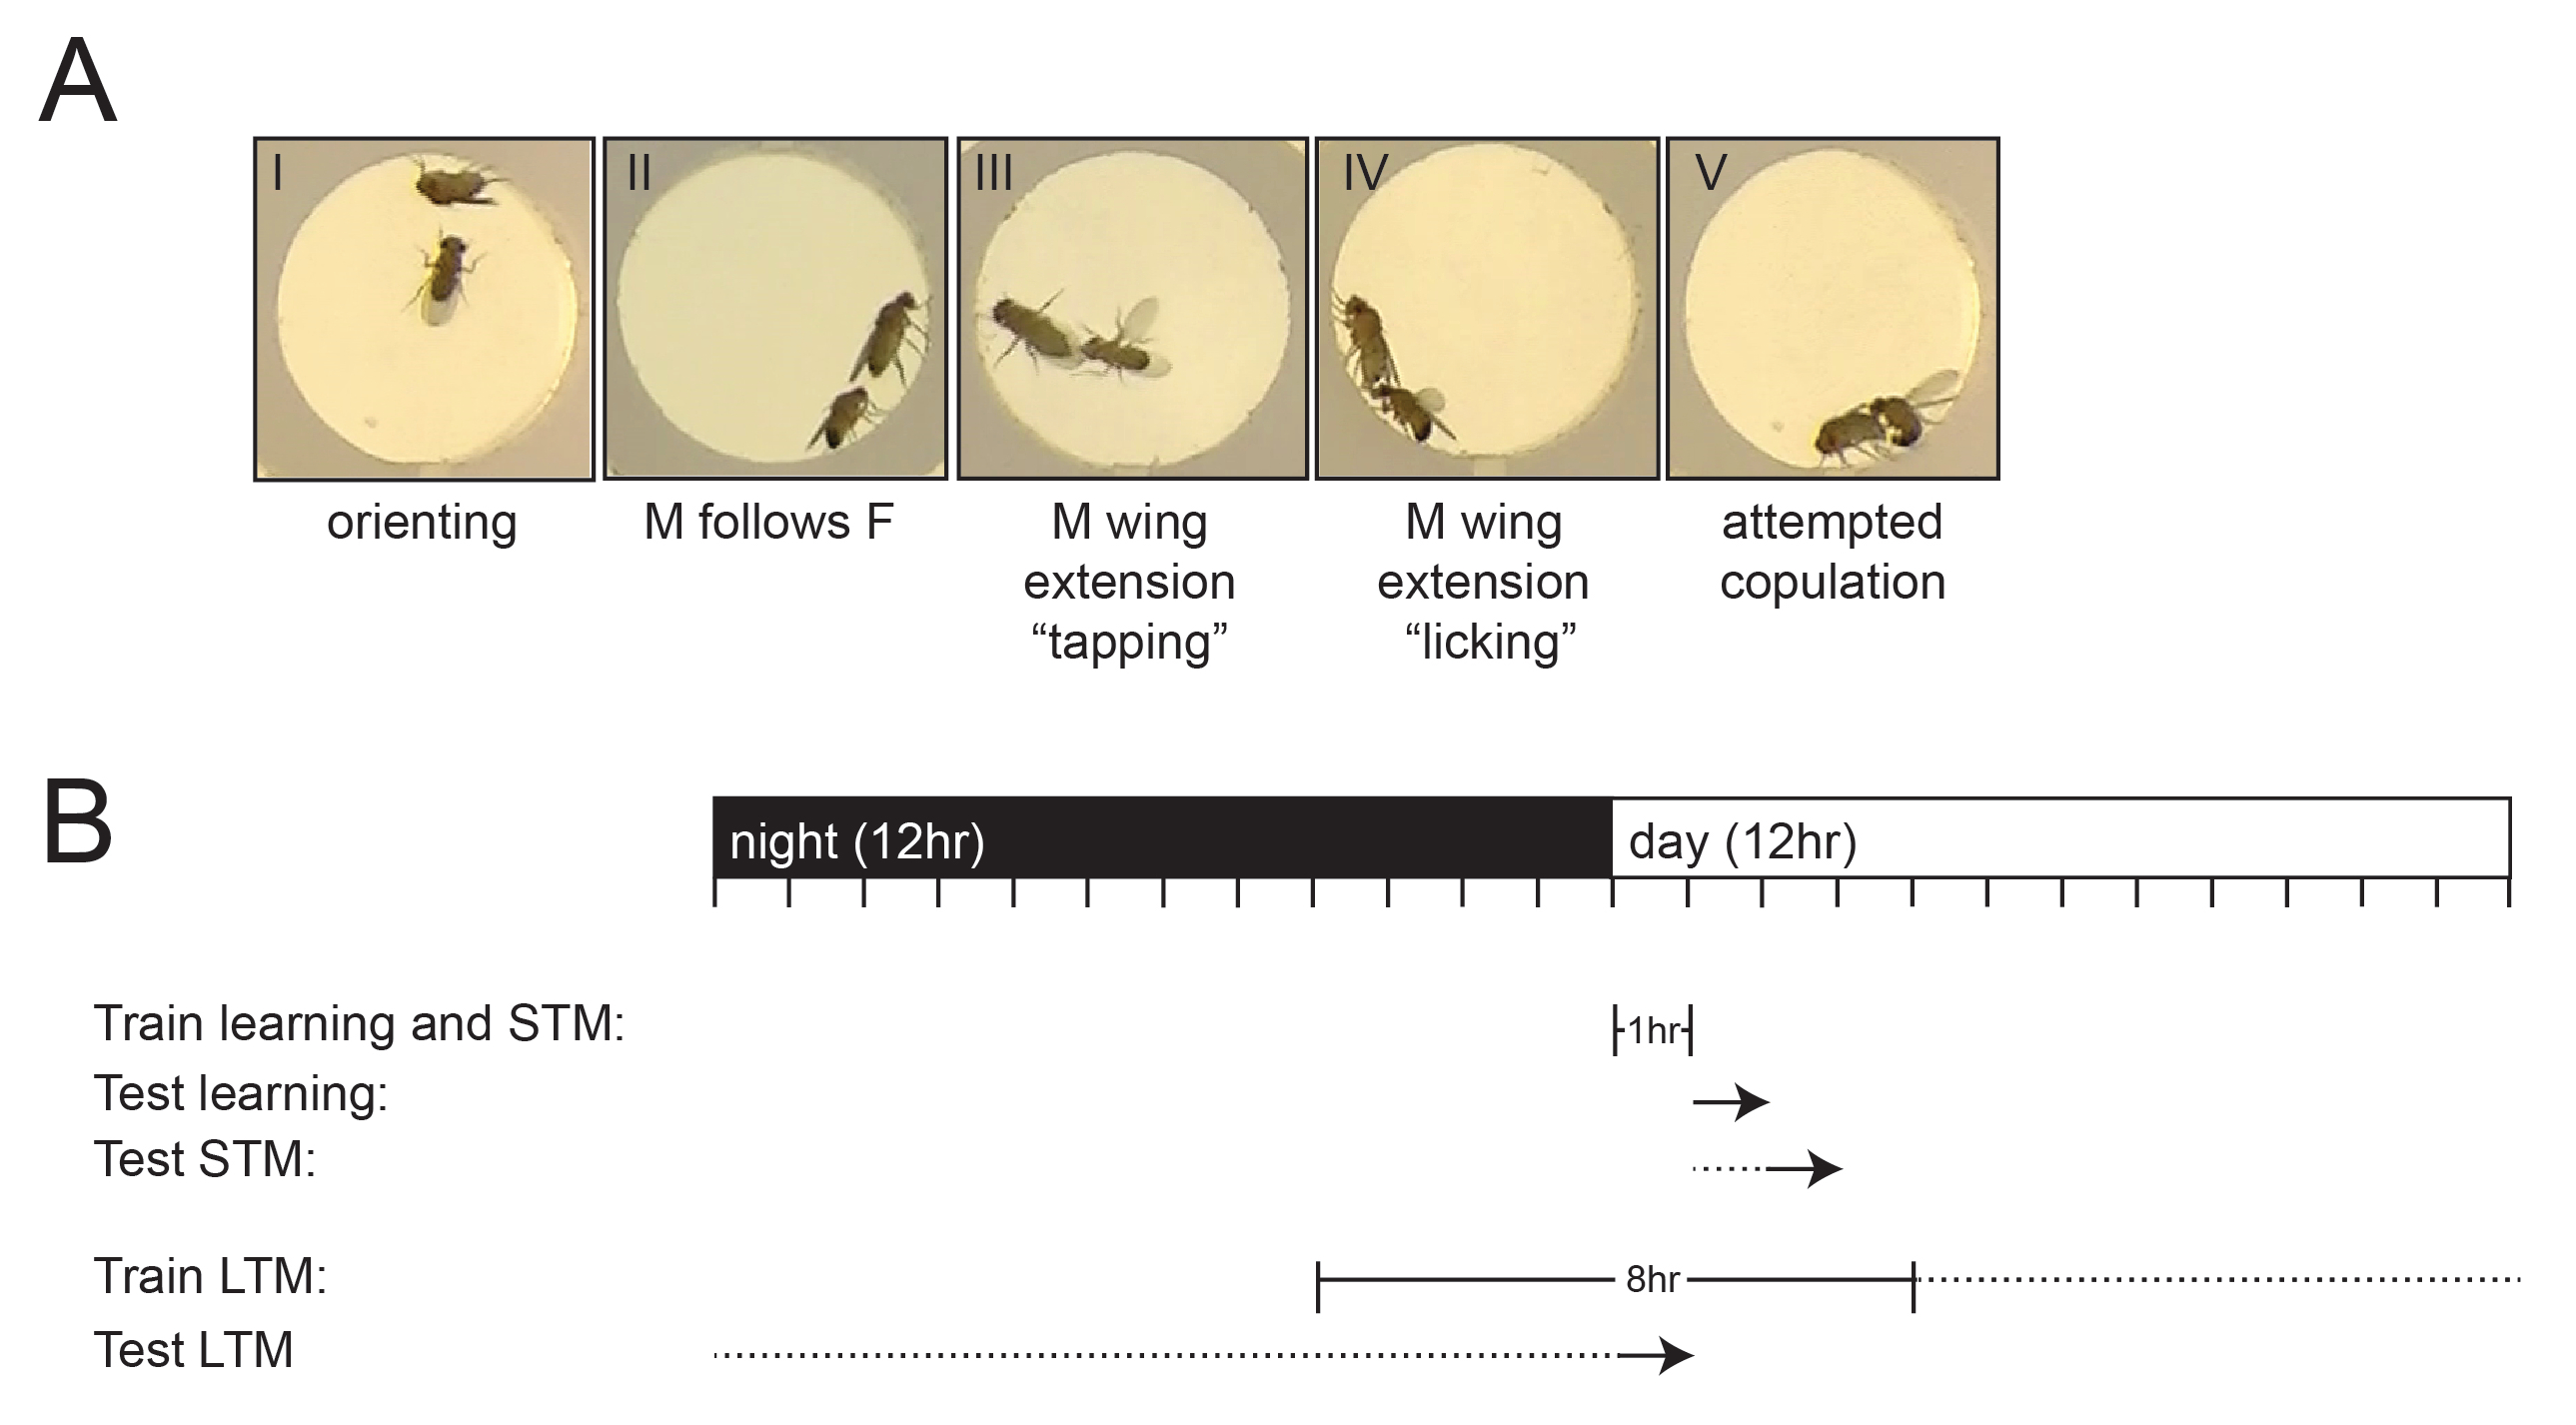 Drosophila Courtship Conditioning As a Measure of Learning